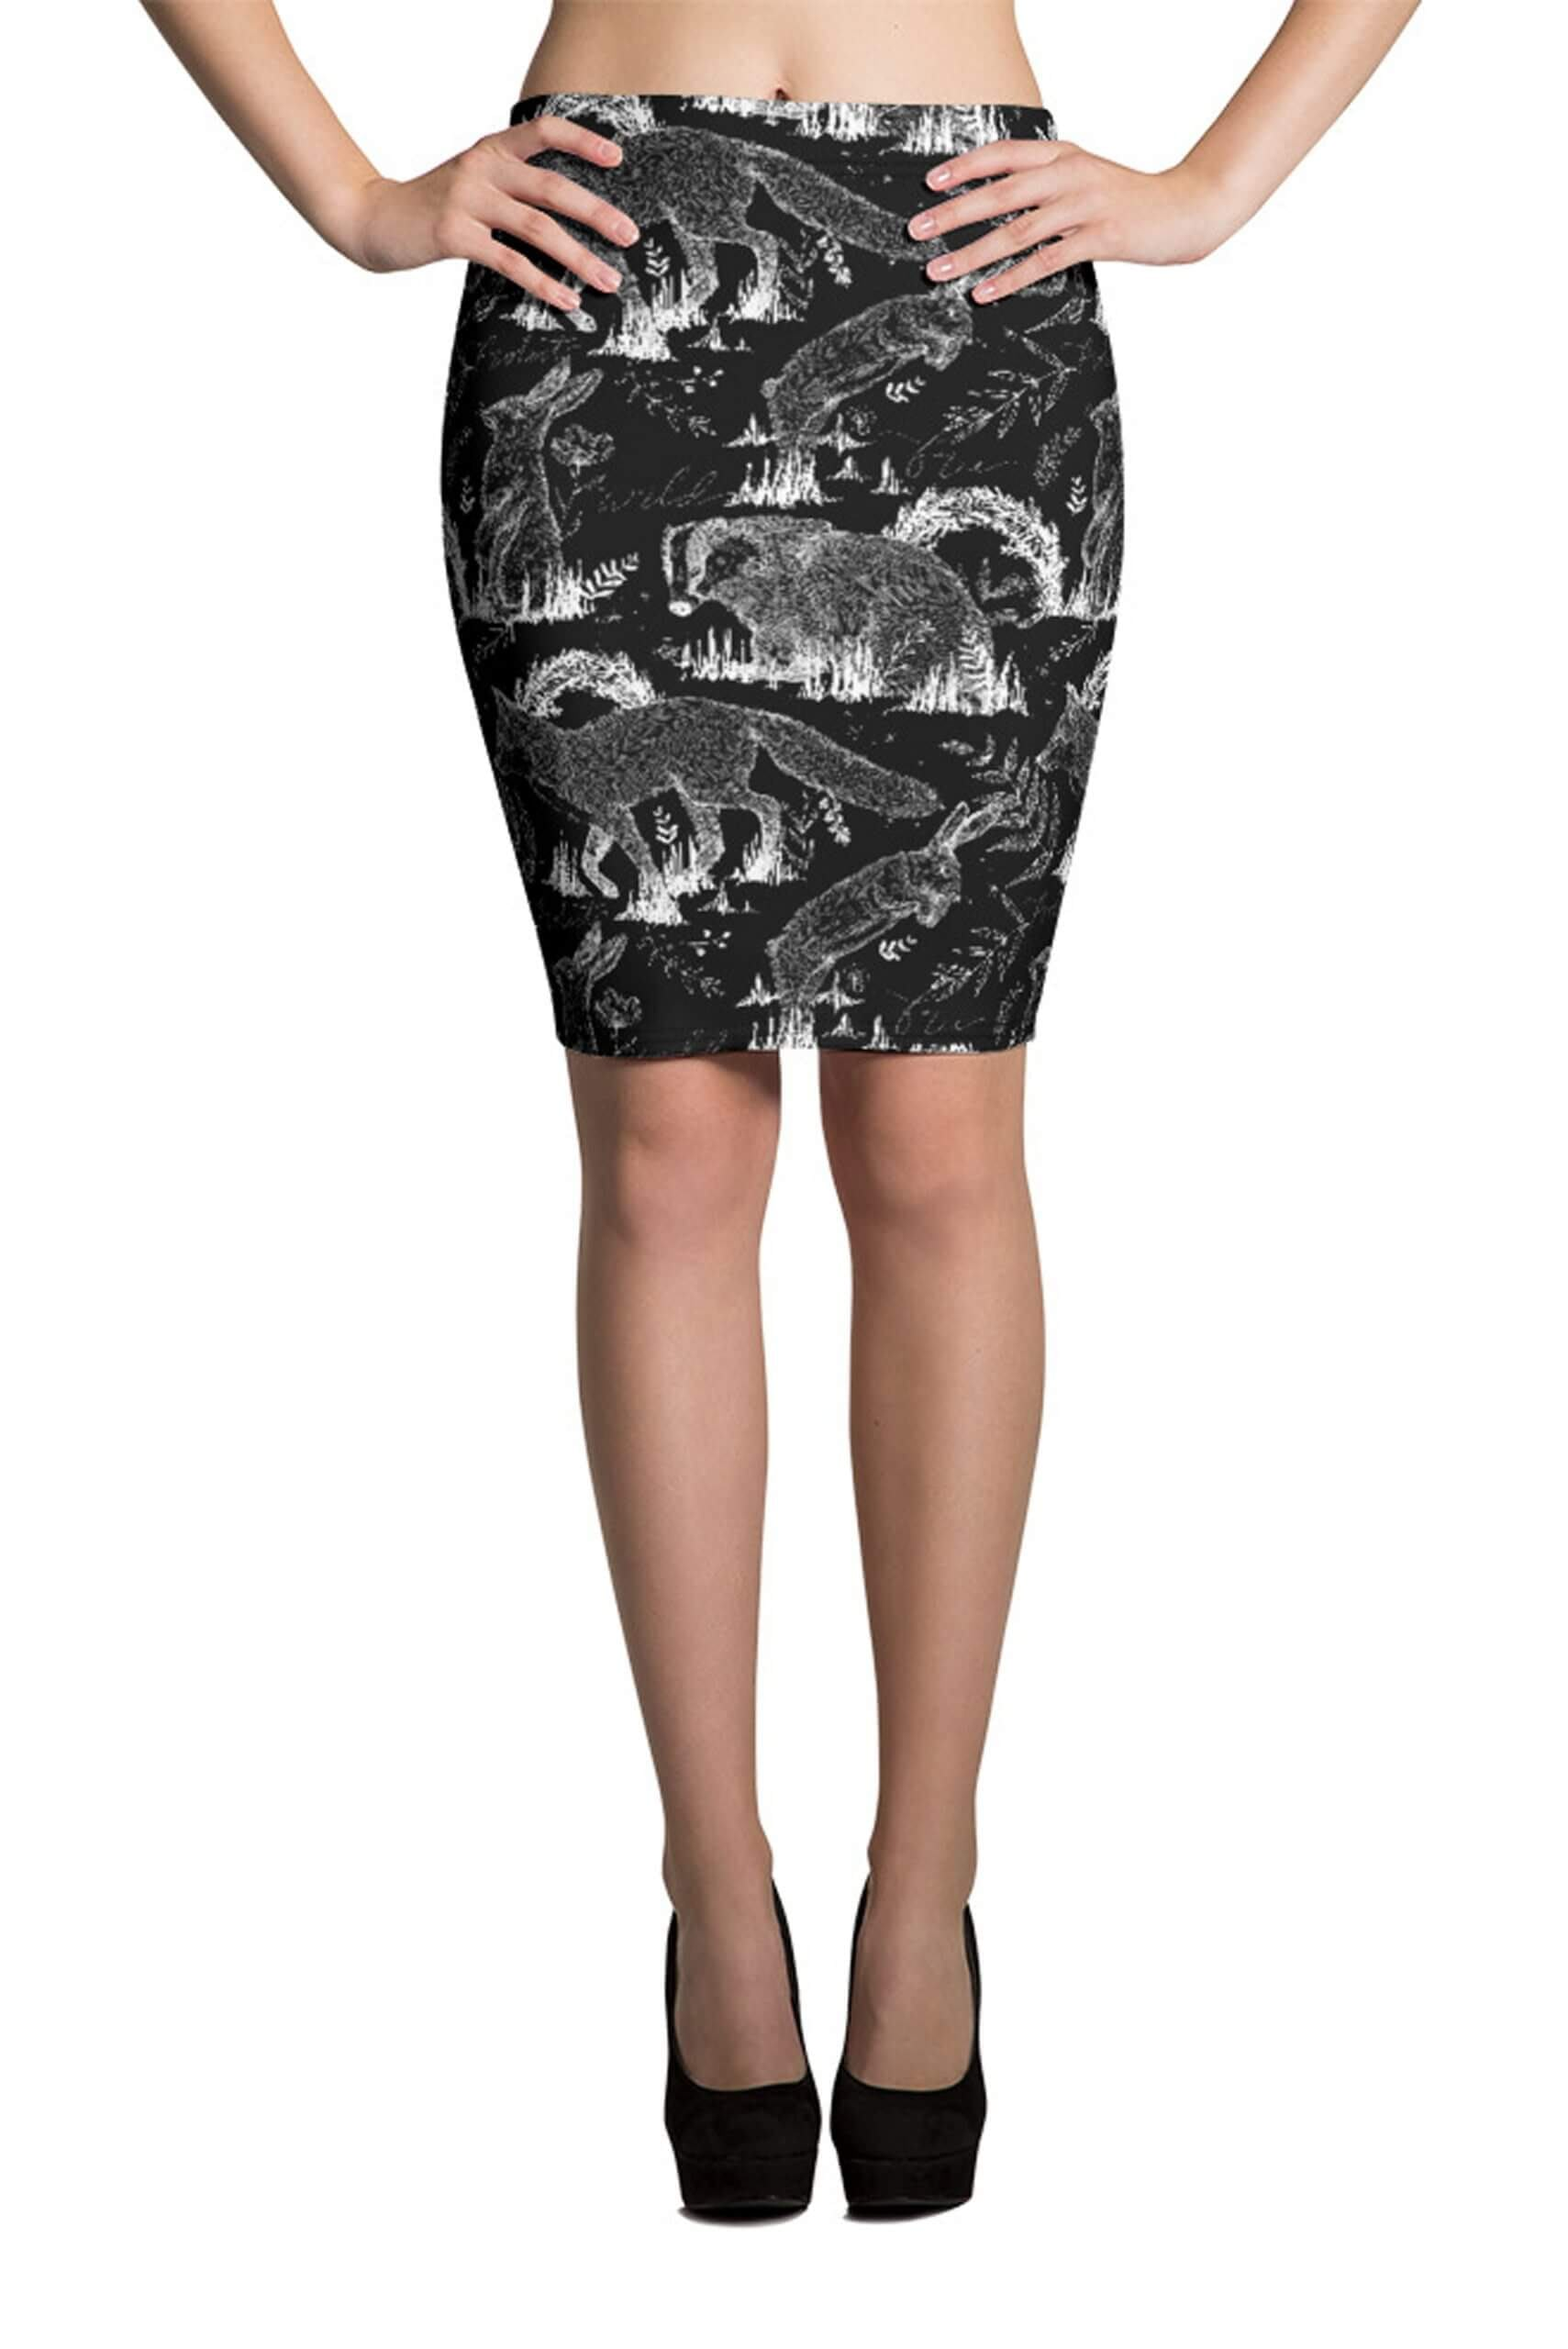 All over vegan inspired wildlife printed pencil skirt